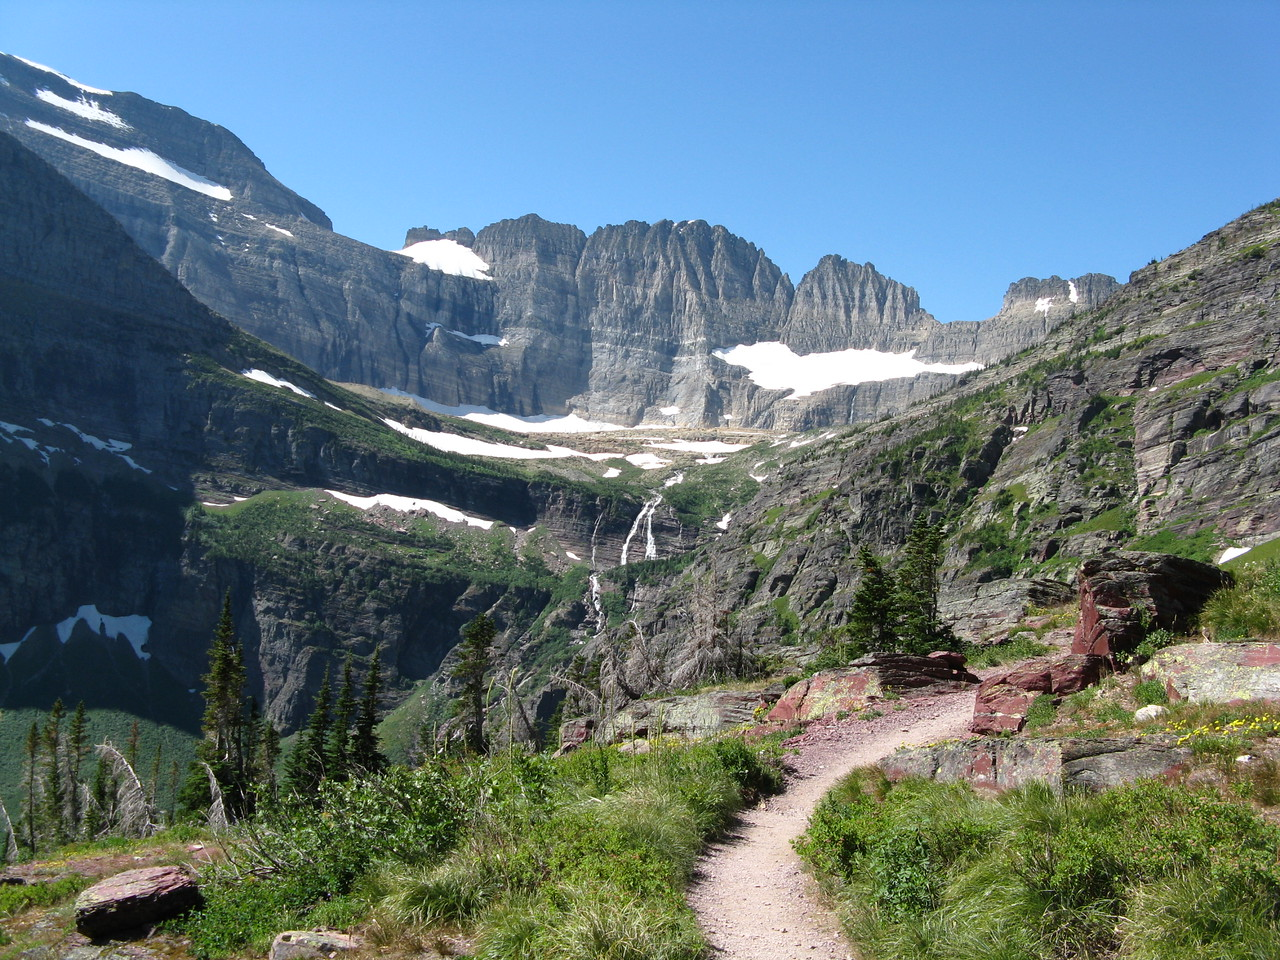 Mount Gould, Grinnell Falls, and the trail.